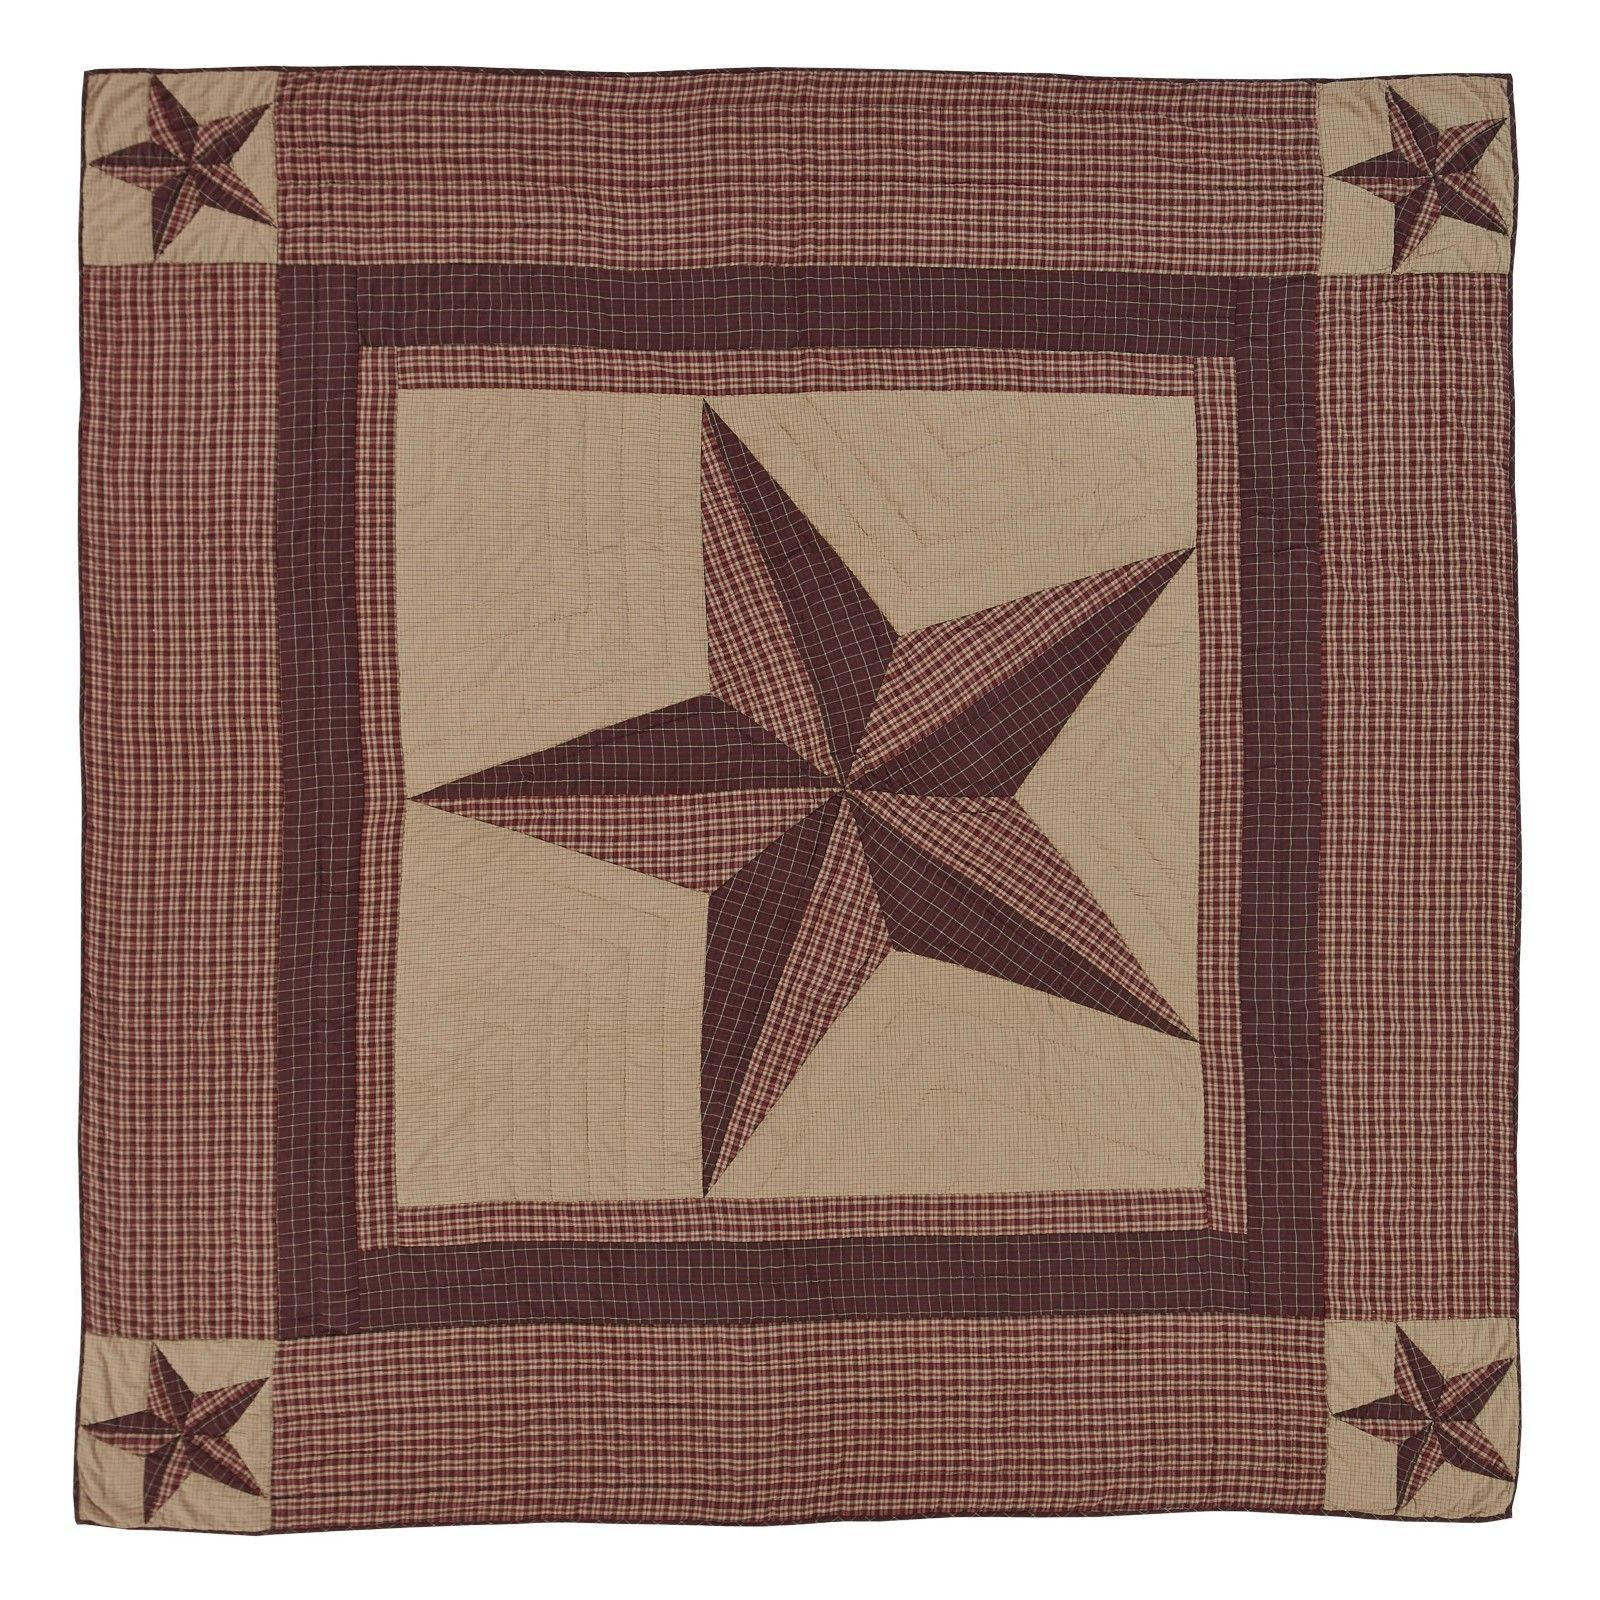 California King - Landon - VHC - Patchwork Quilt - Red, Brown, Khaki -Texas Star